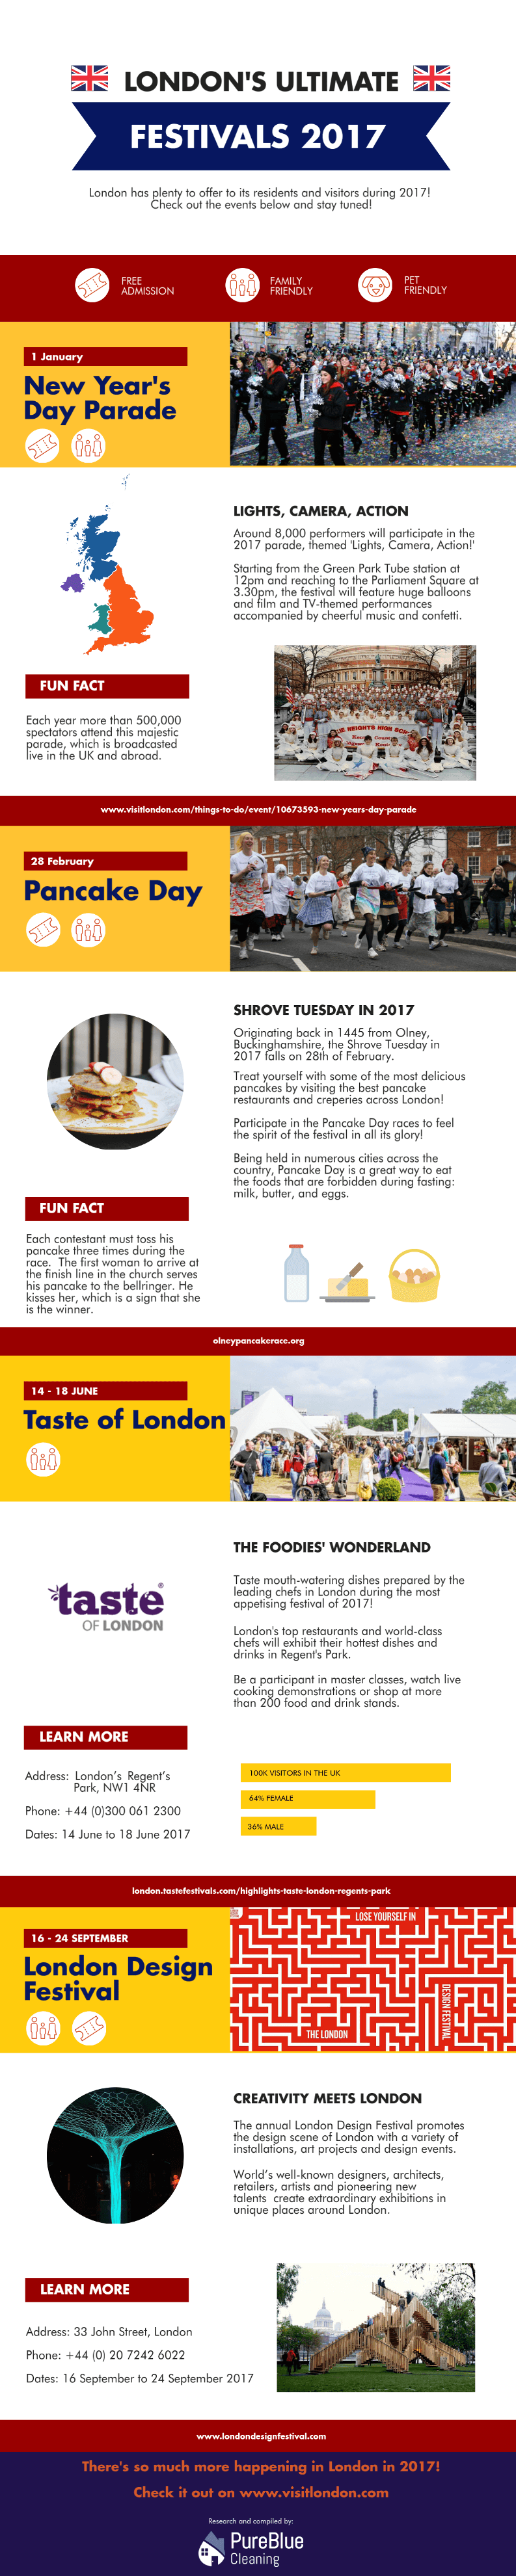 Infographic of top festivals in London 2017